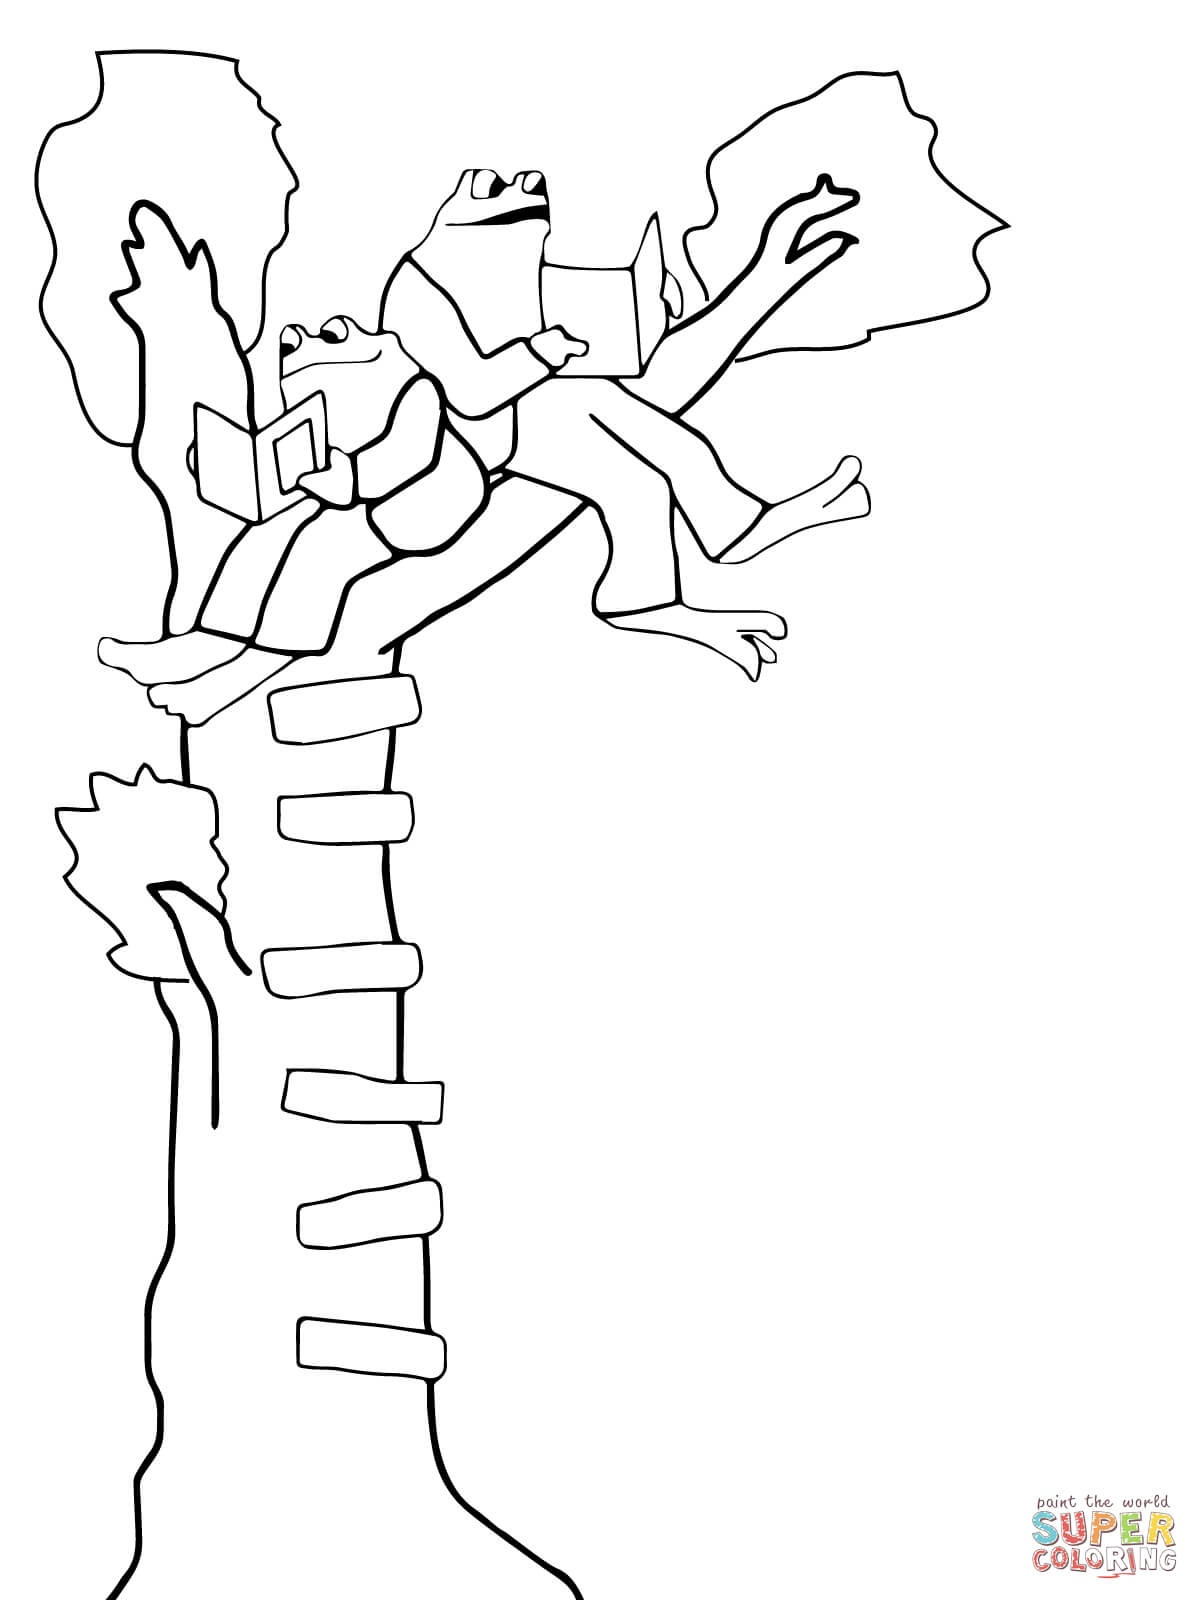 Frog and toad coloring sheets